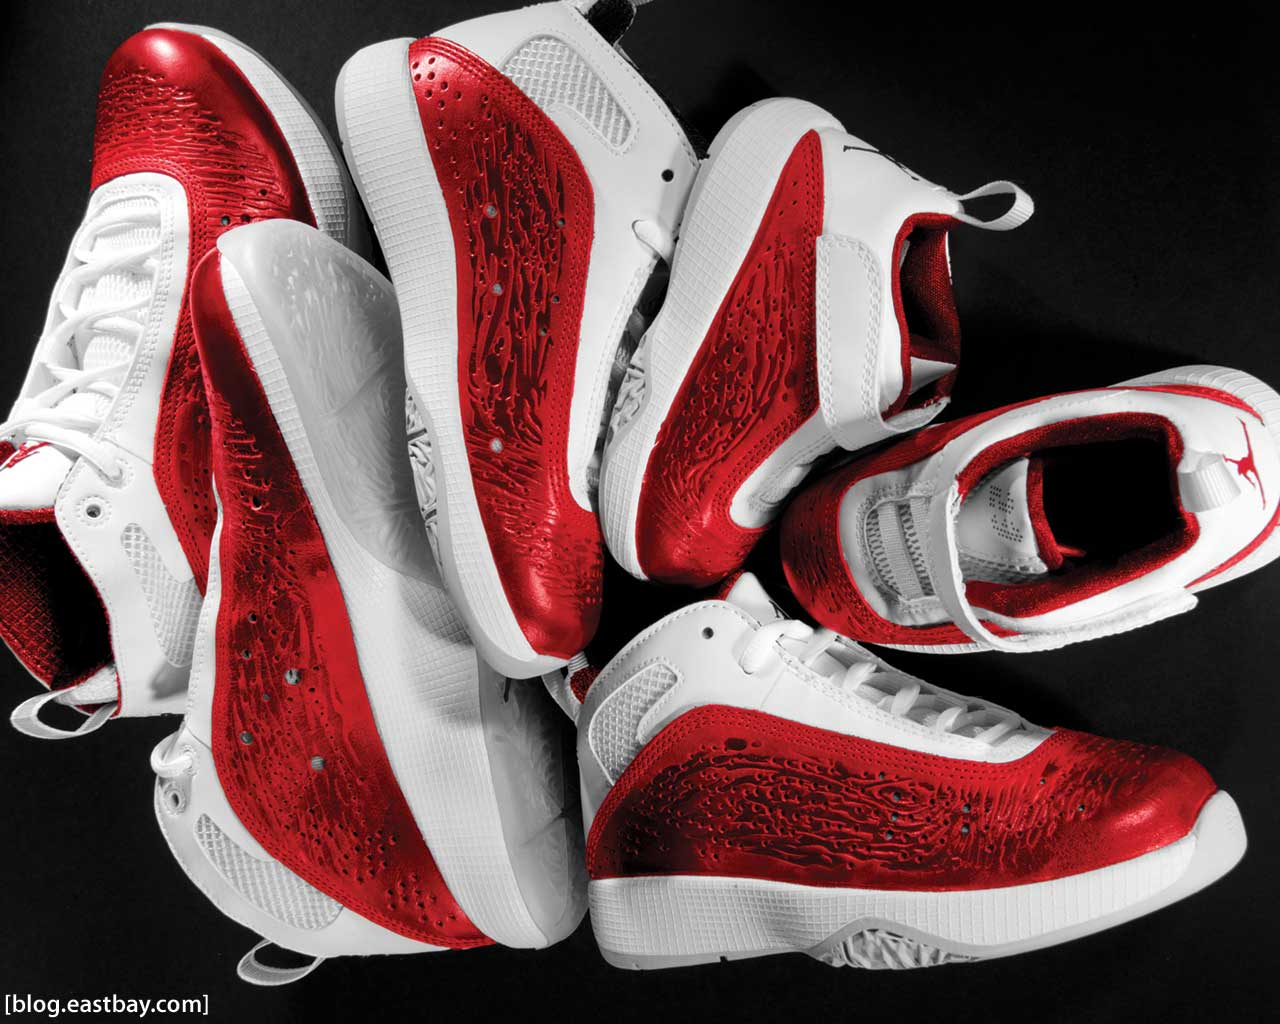 Image For > Air Jordan Shoes Wallpapers Hd